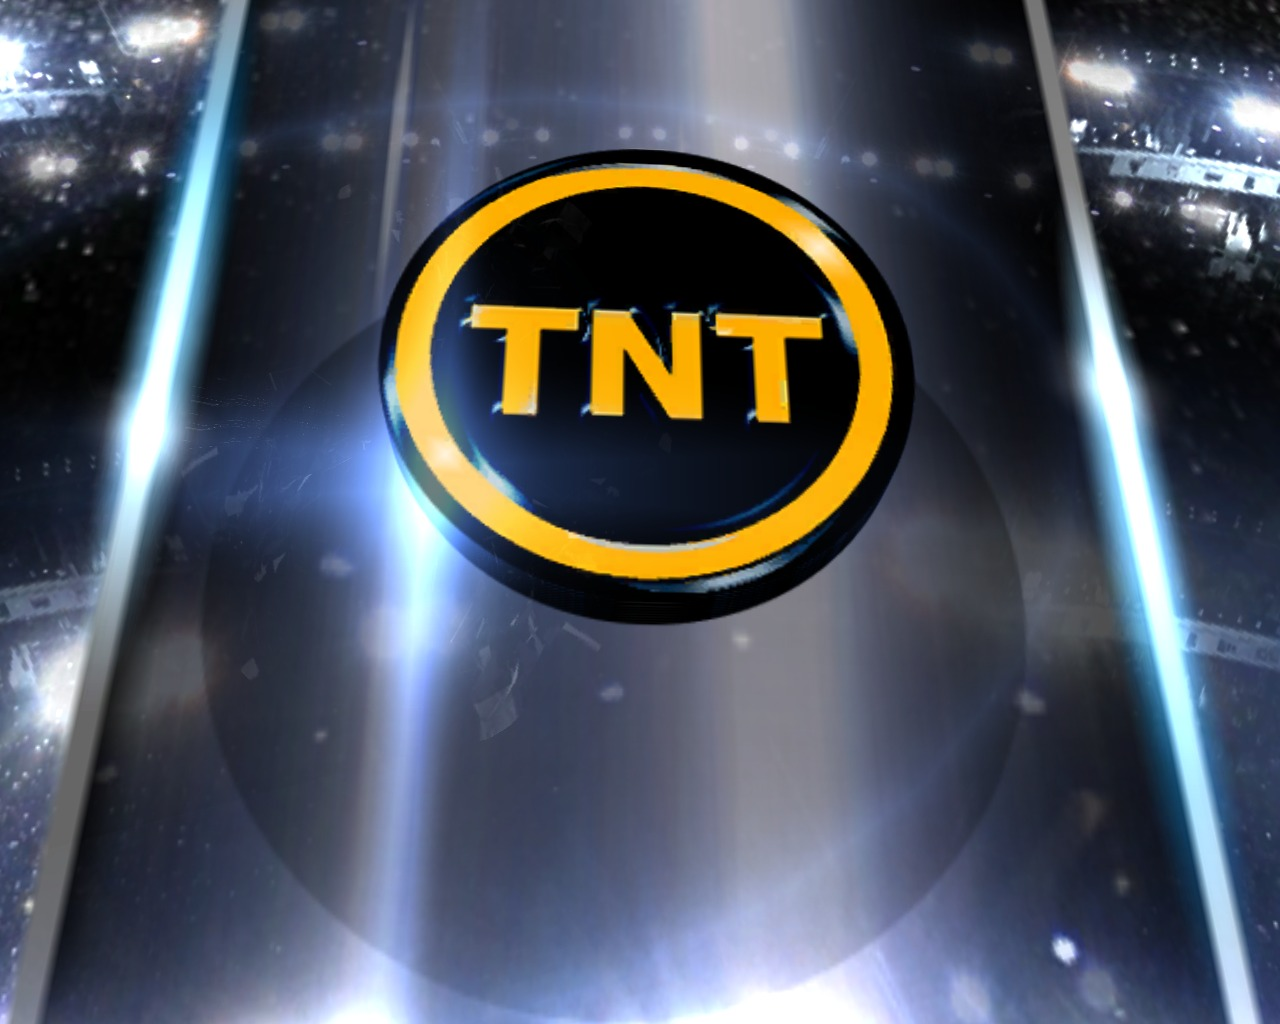 TNT Mode Black Scoreboard